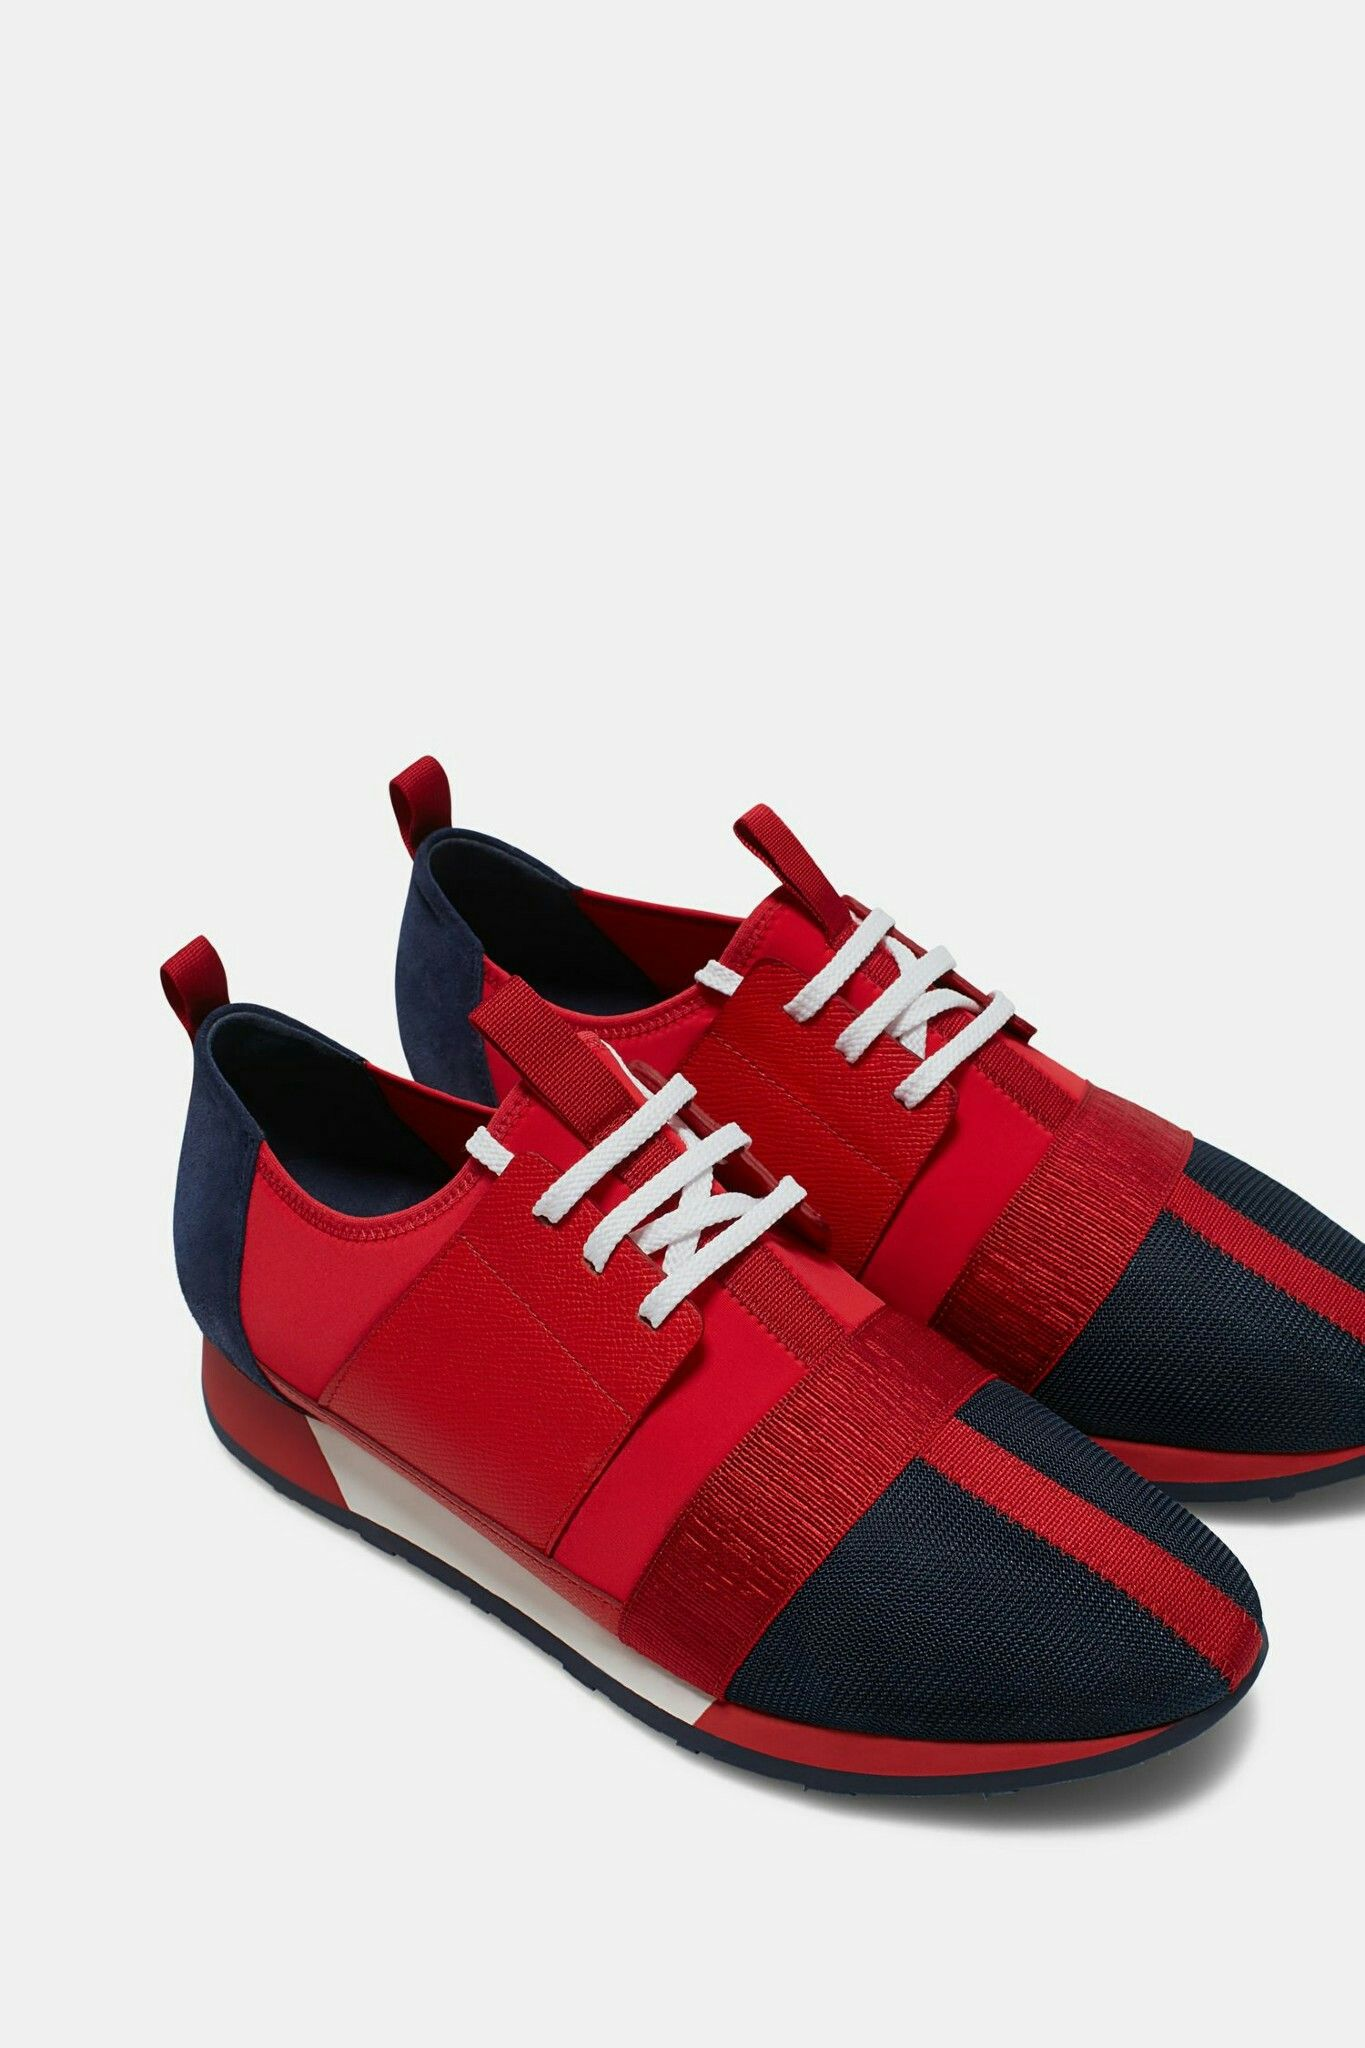 sports shoes 853b7 04a65 Carolina Herrera sport sneakers